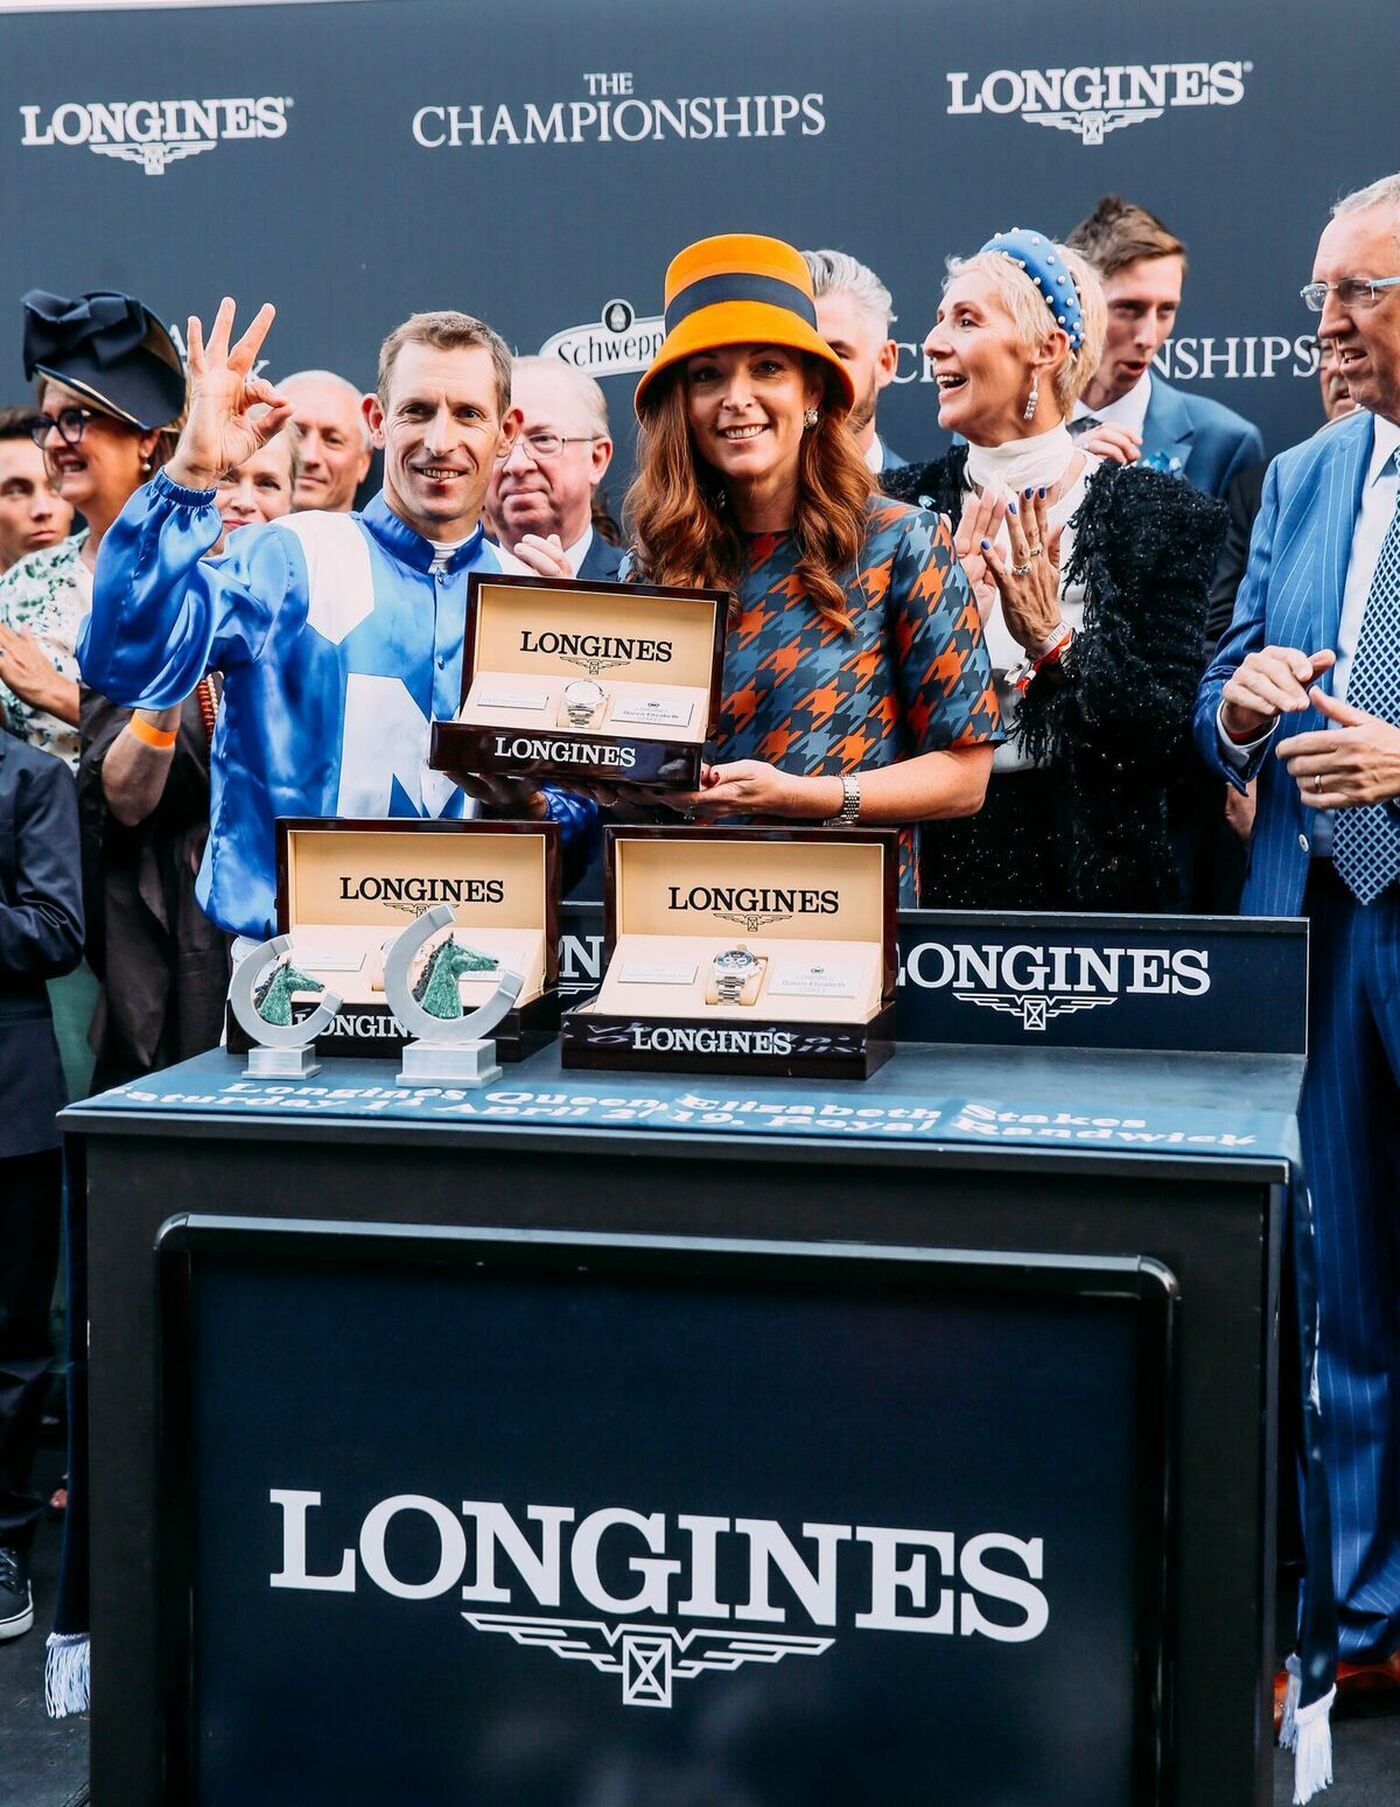 Longines Flat Racing Event: Unforgettable last victory of Winx at the Longines Queen Elizabeth Stakes 3